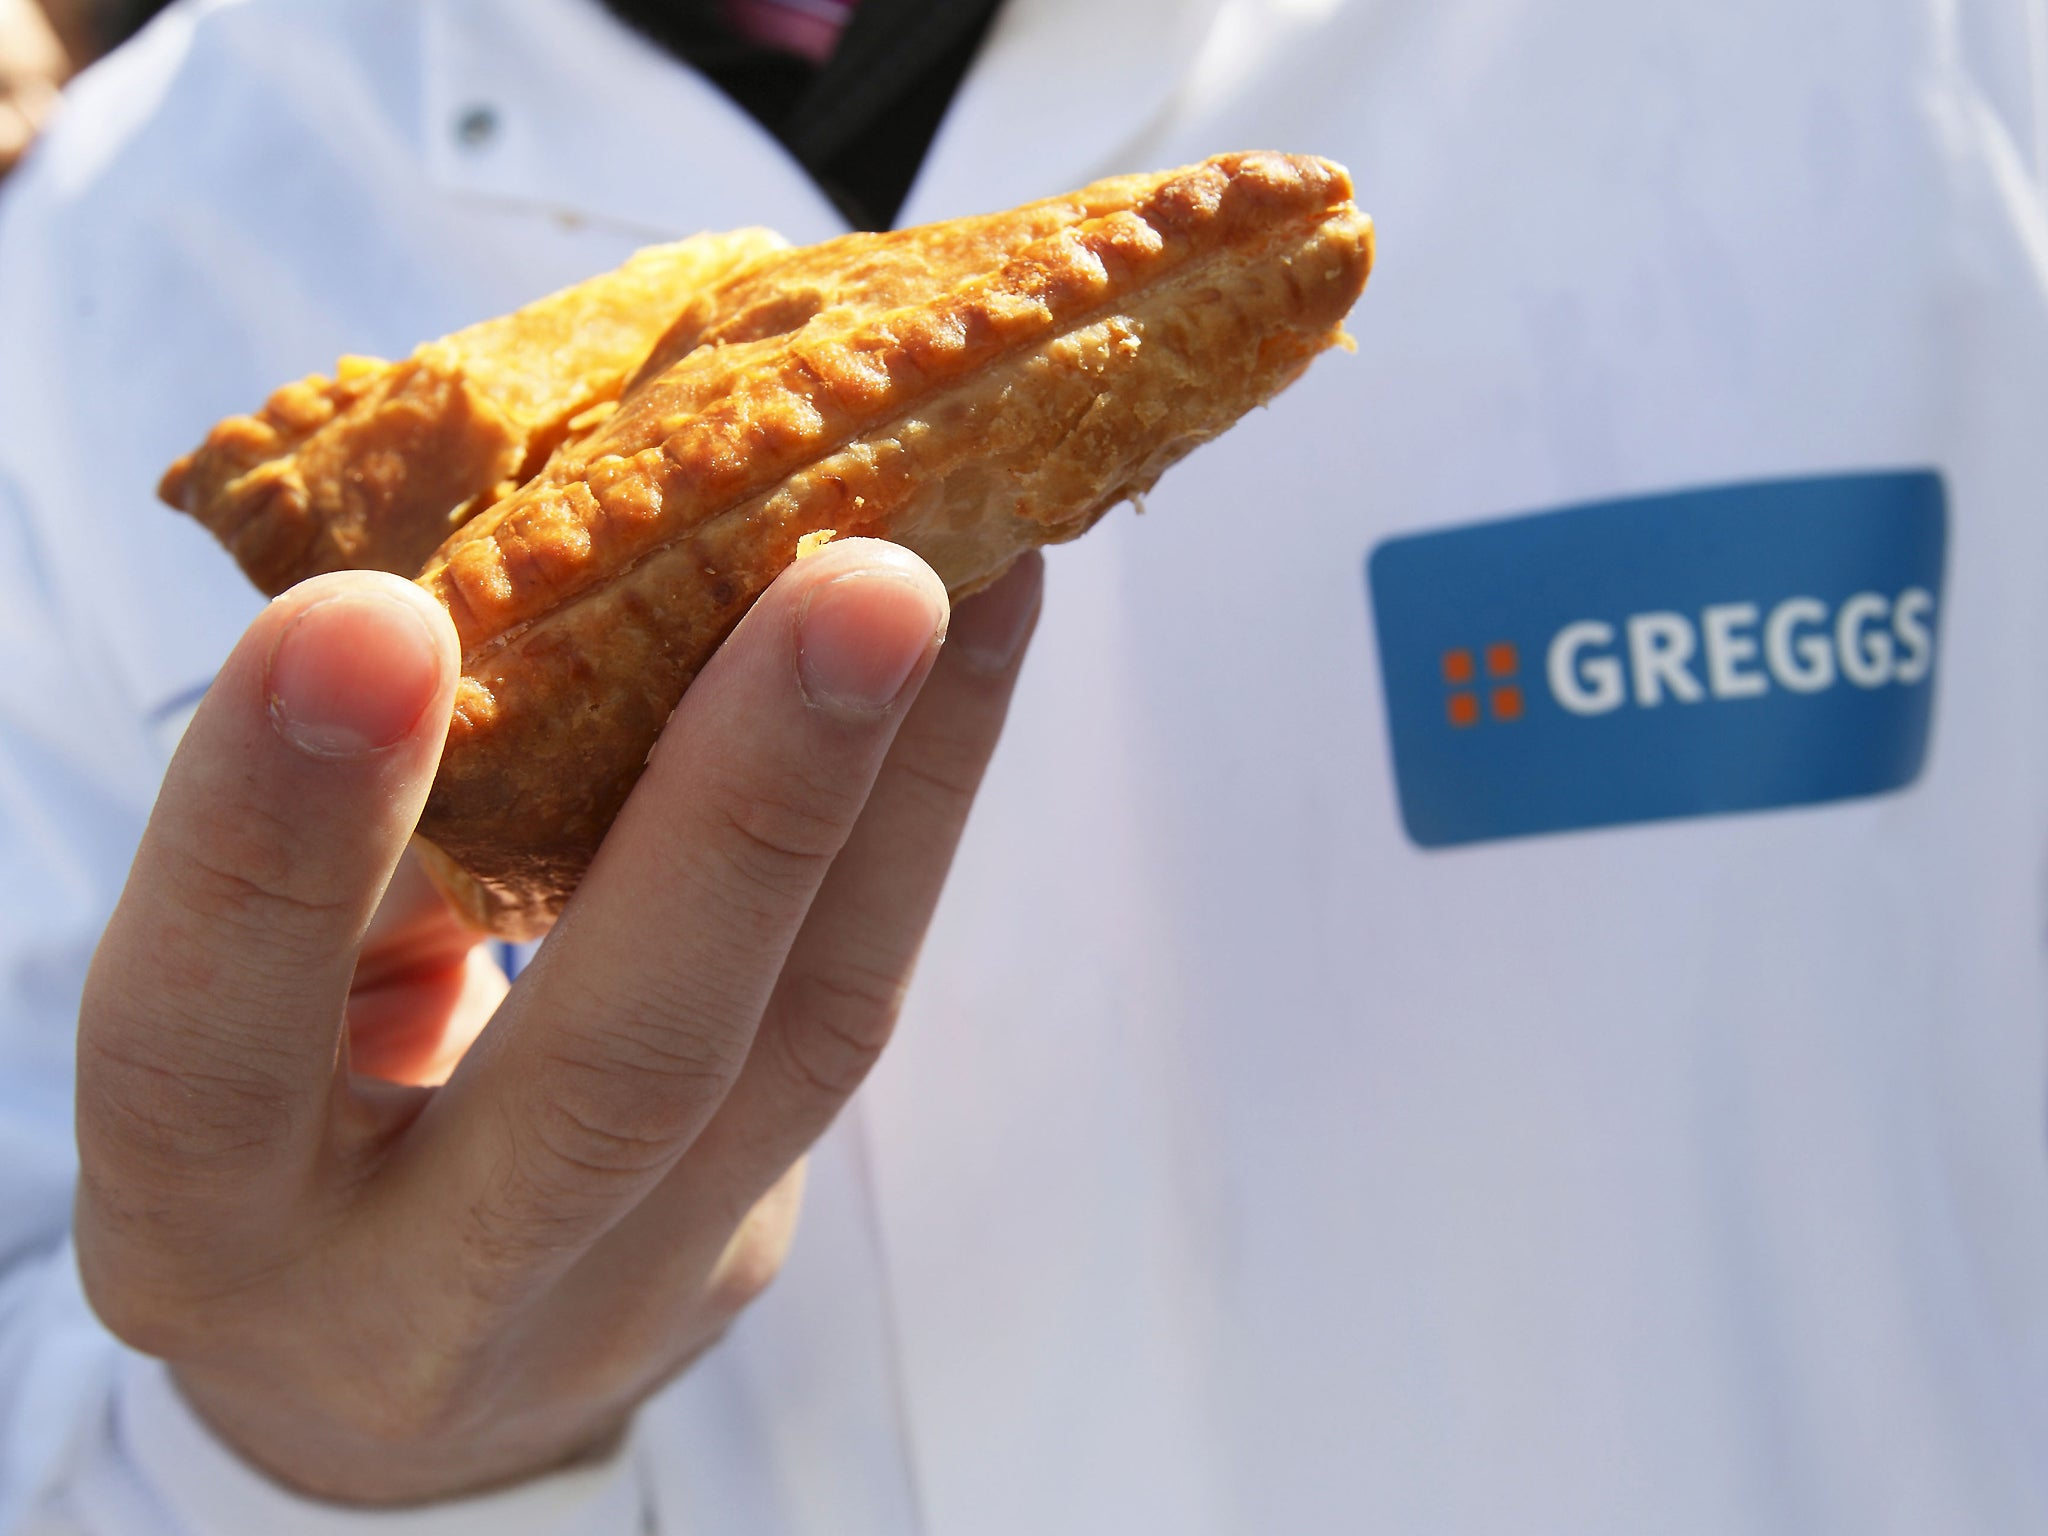 Woman fined for dropping Greggs paper bag 11 years ago